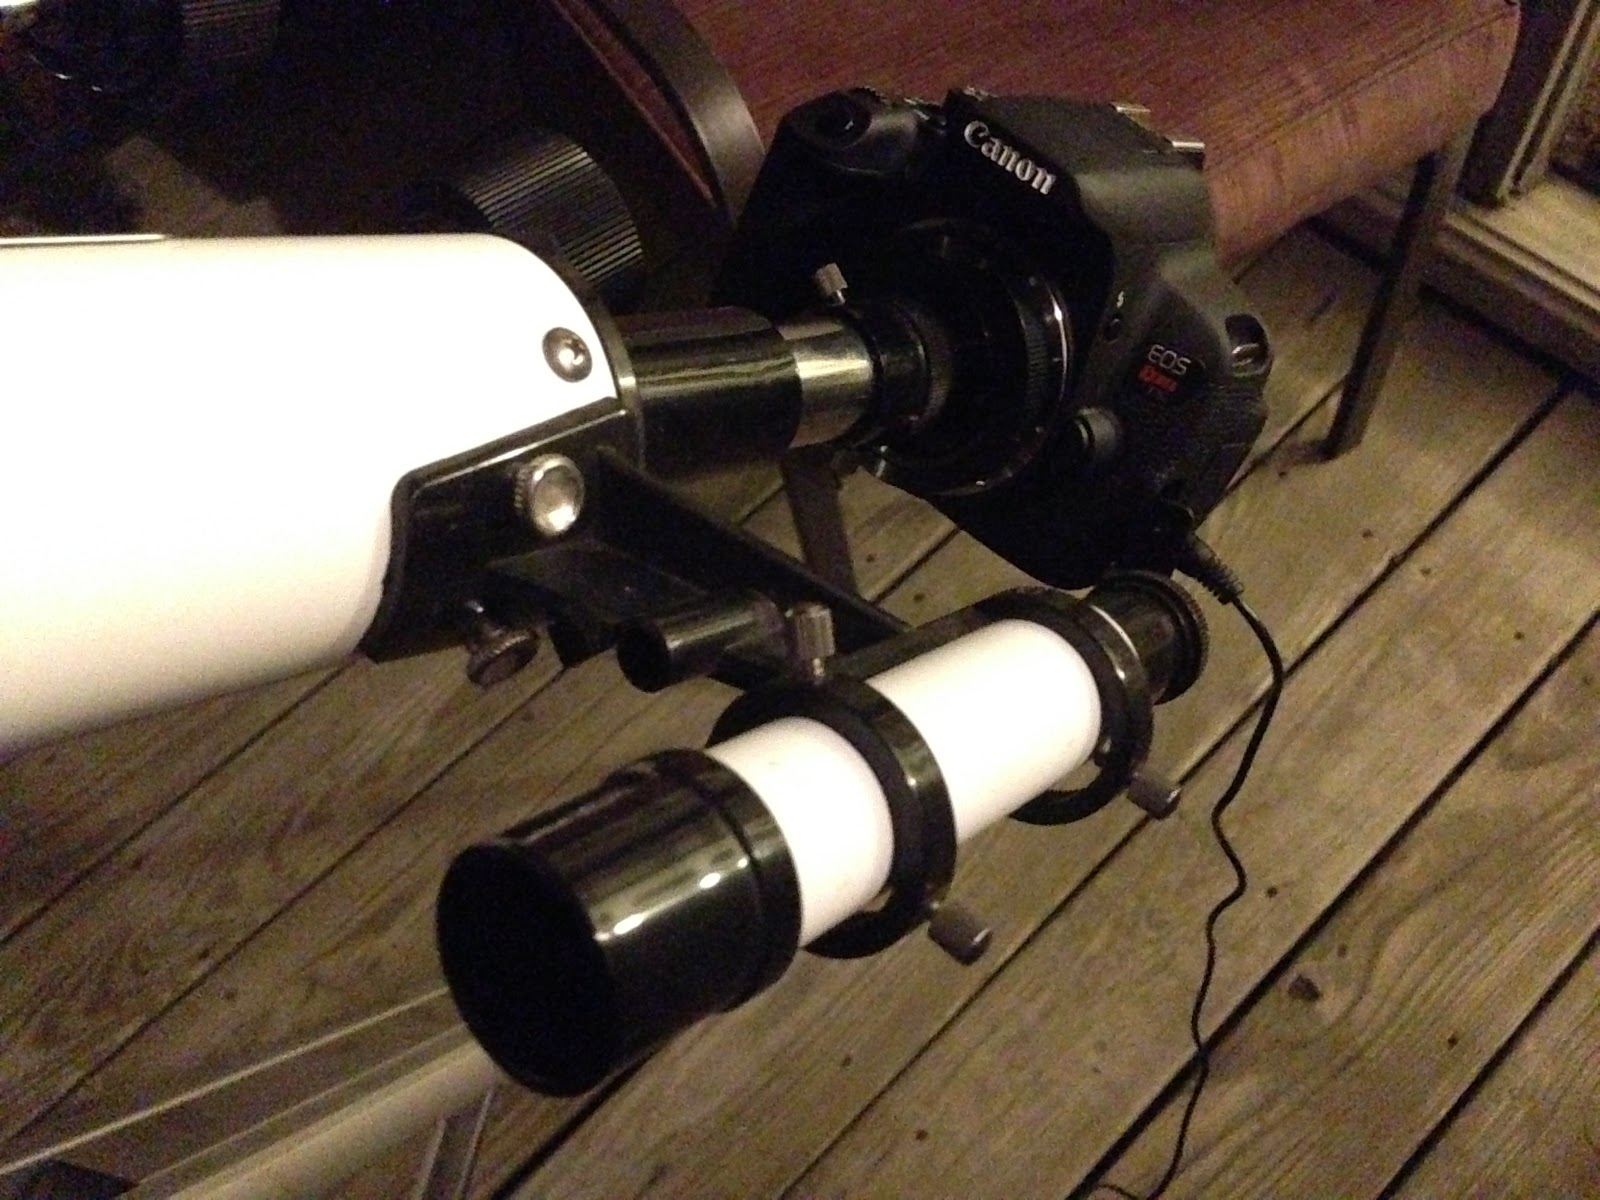 DSLR attached to refractor telescope